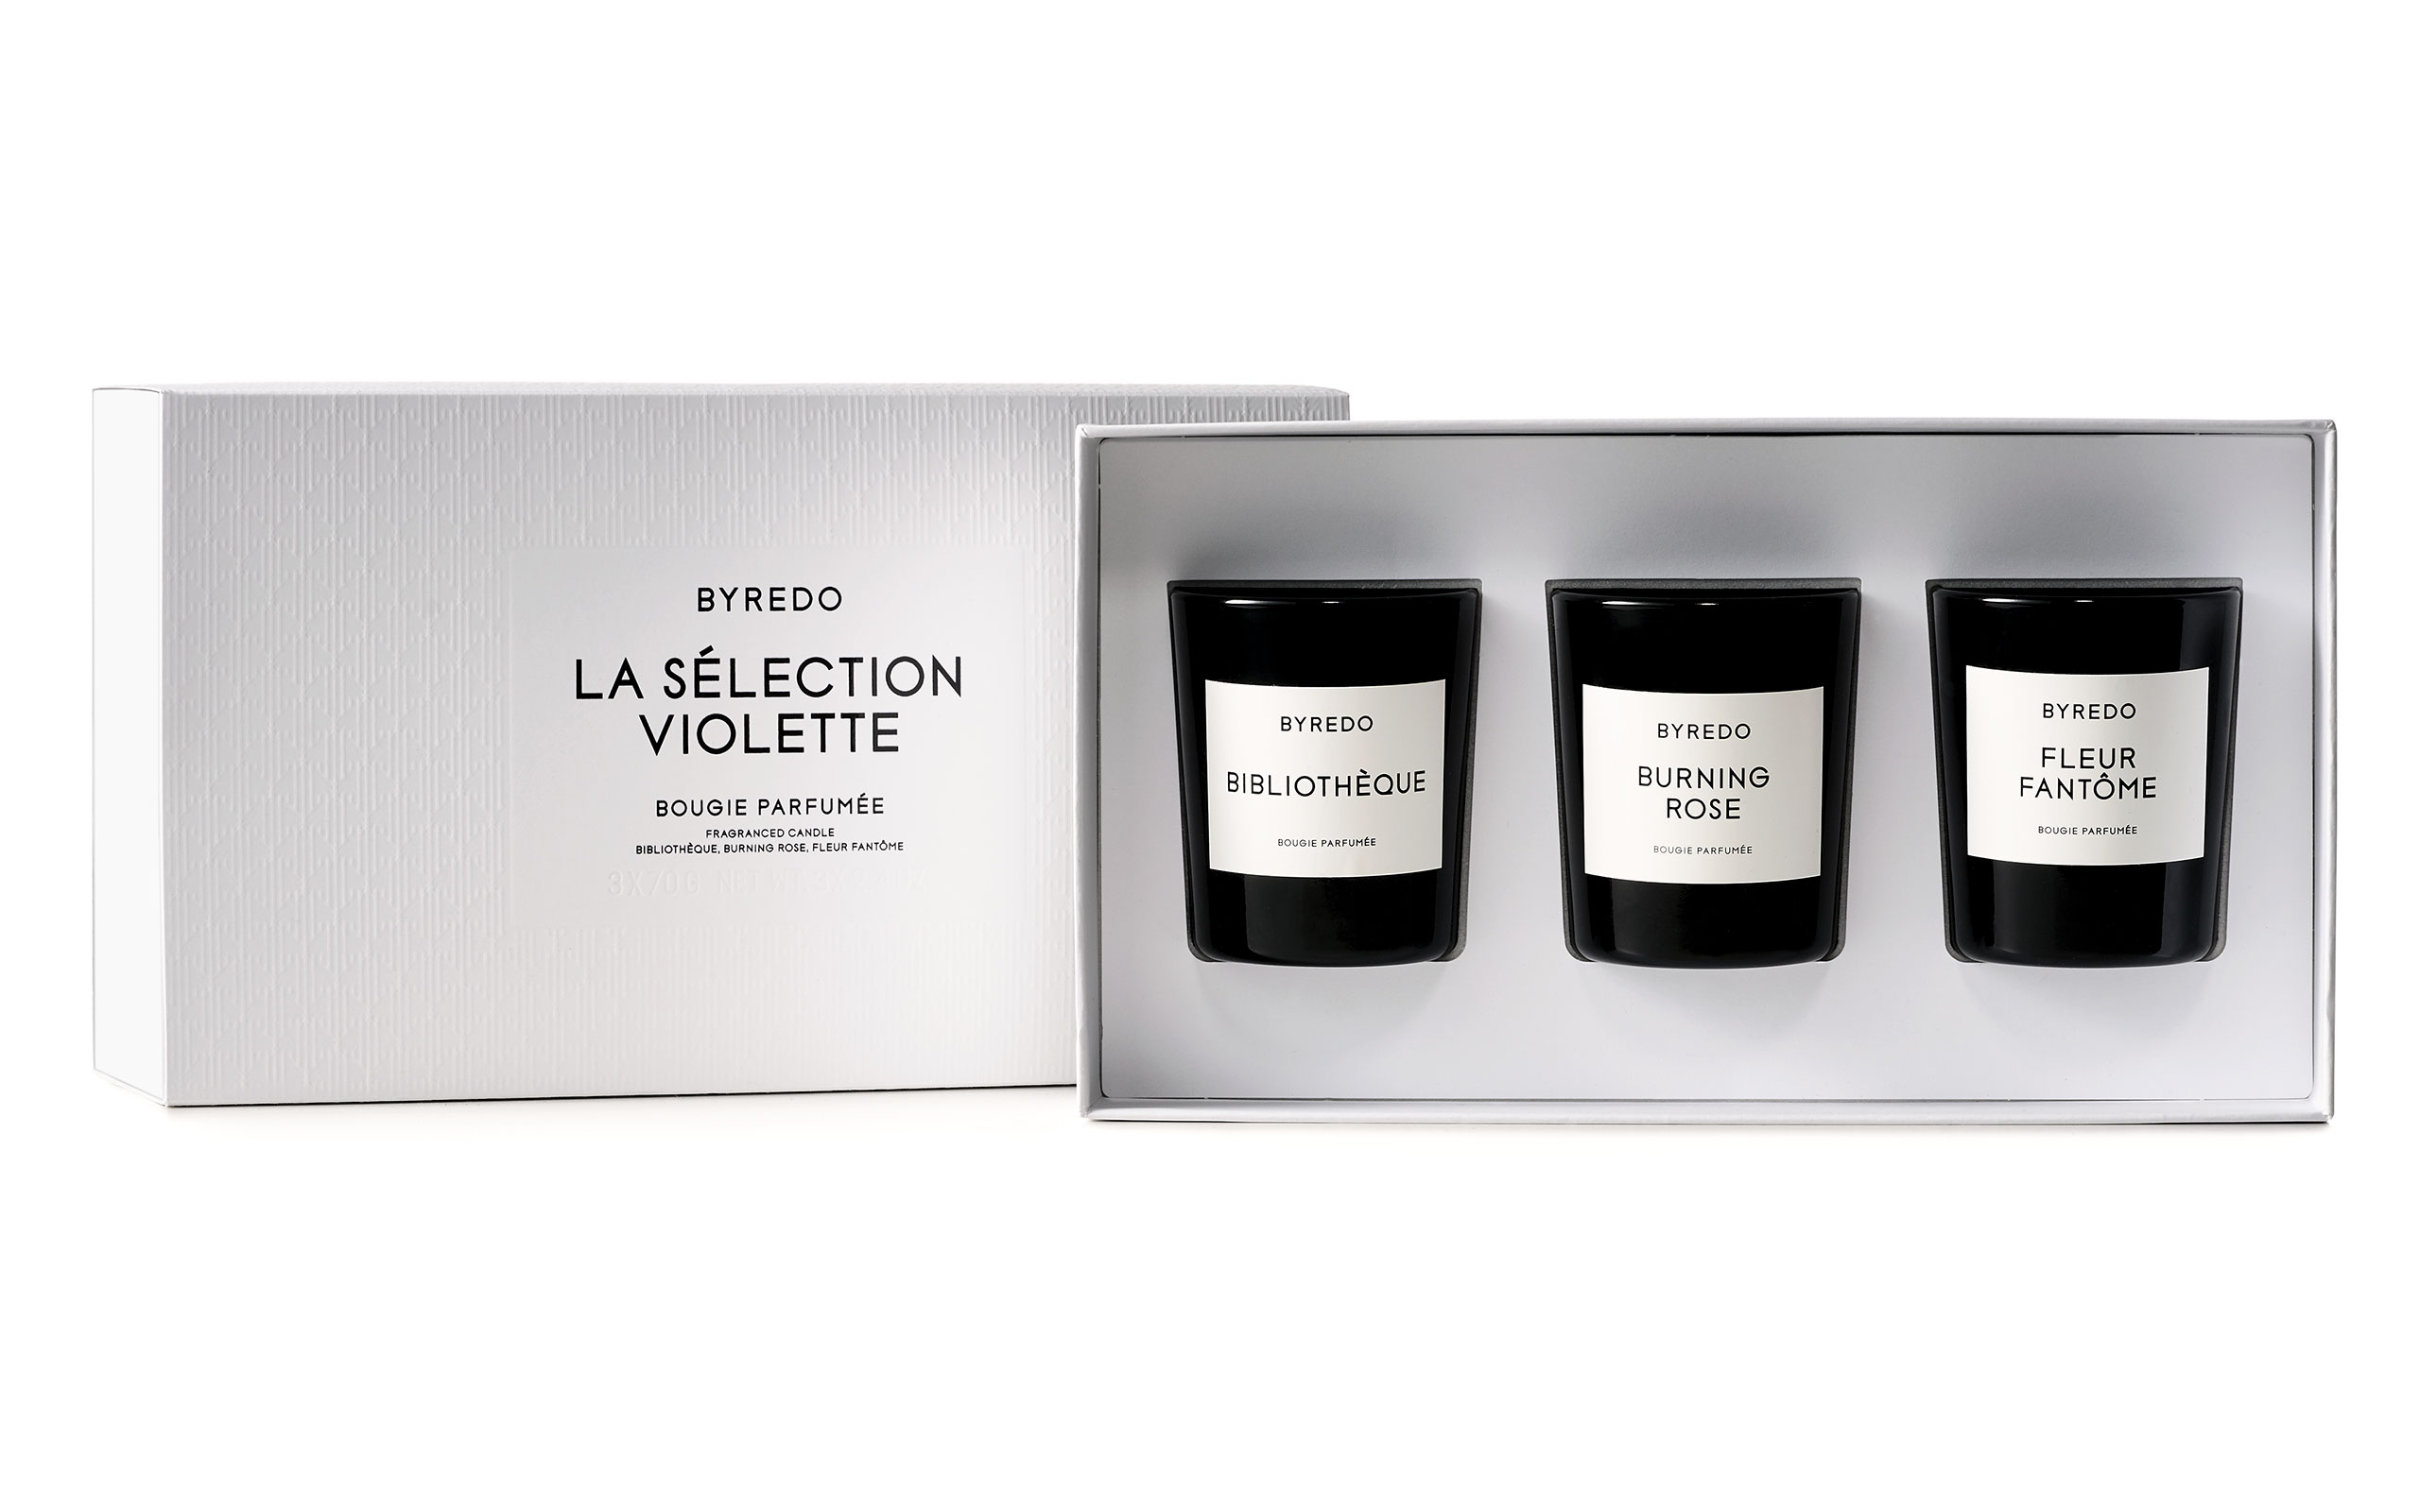 BYREDO Launches 2018 Holiday Collection